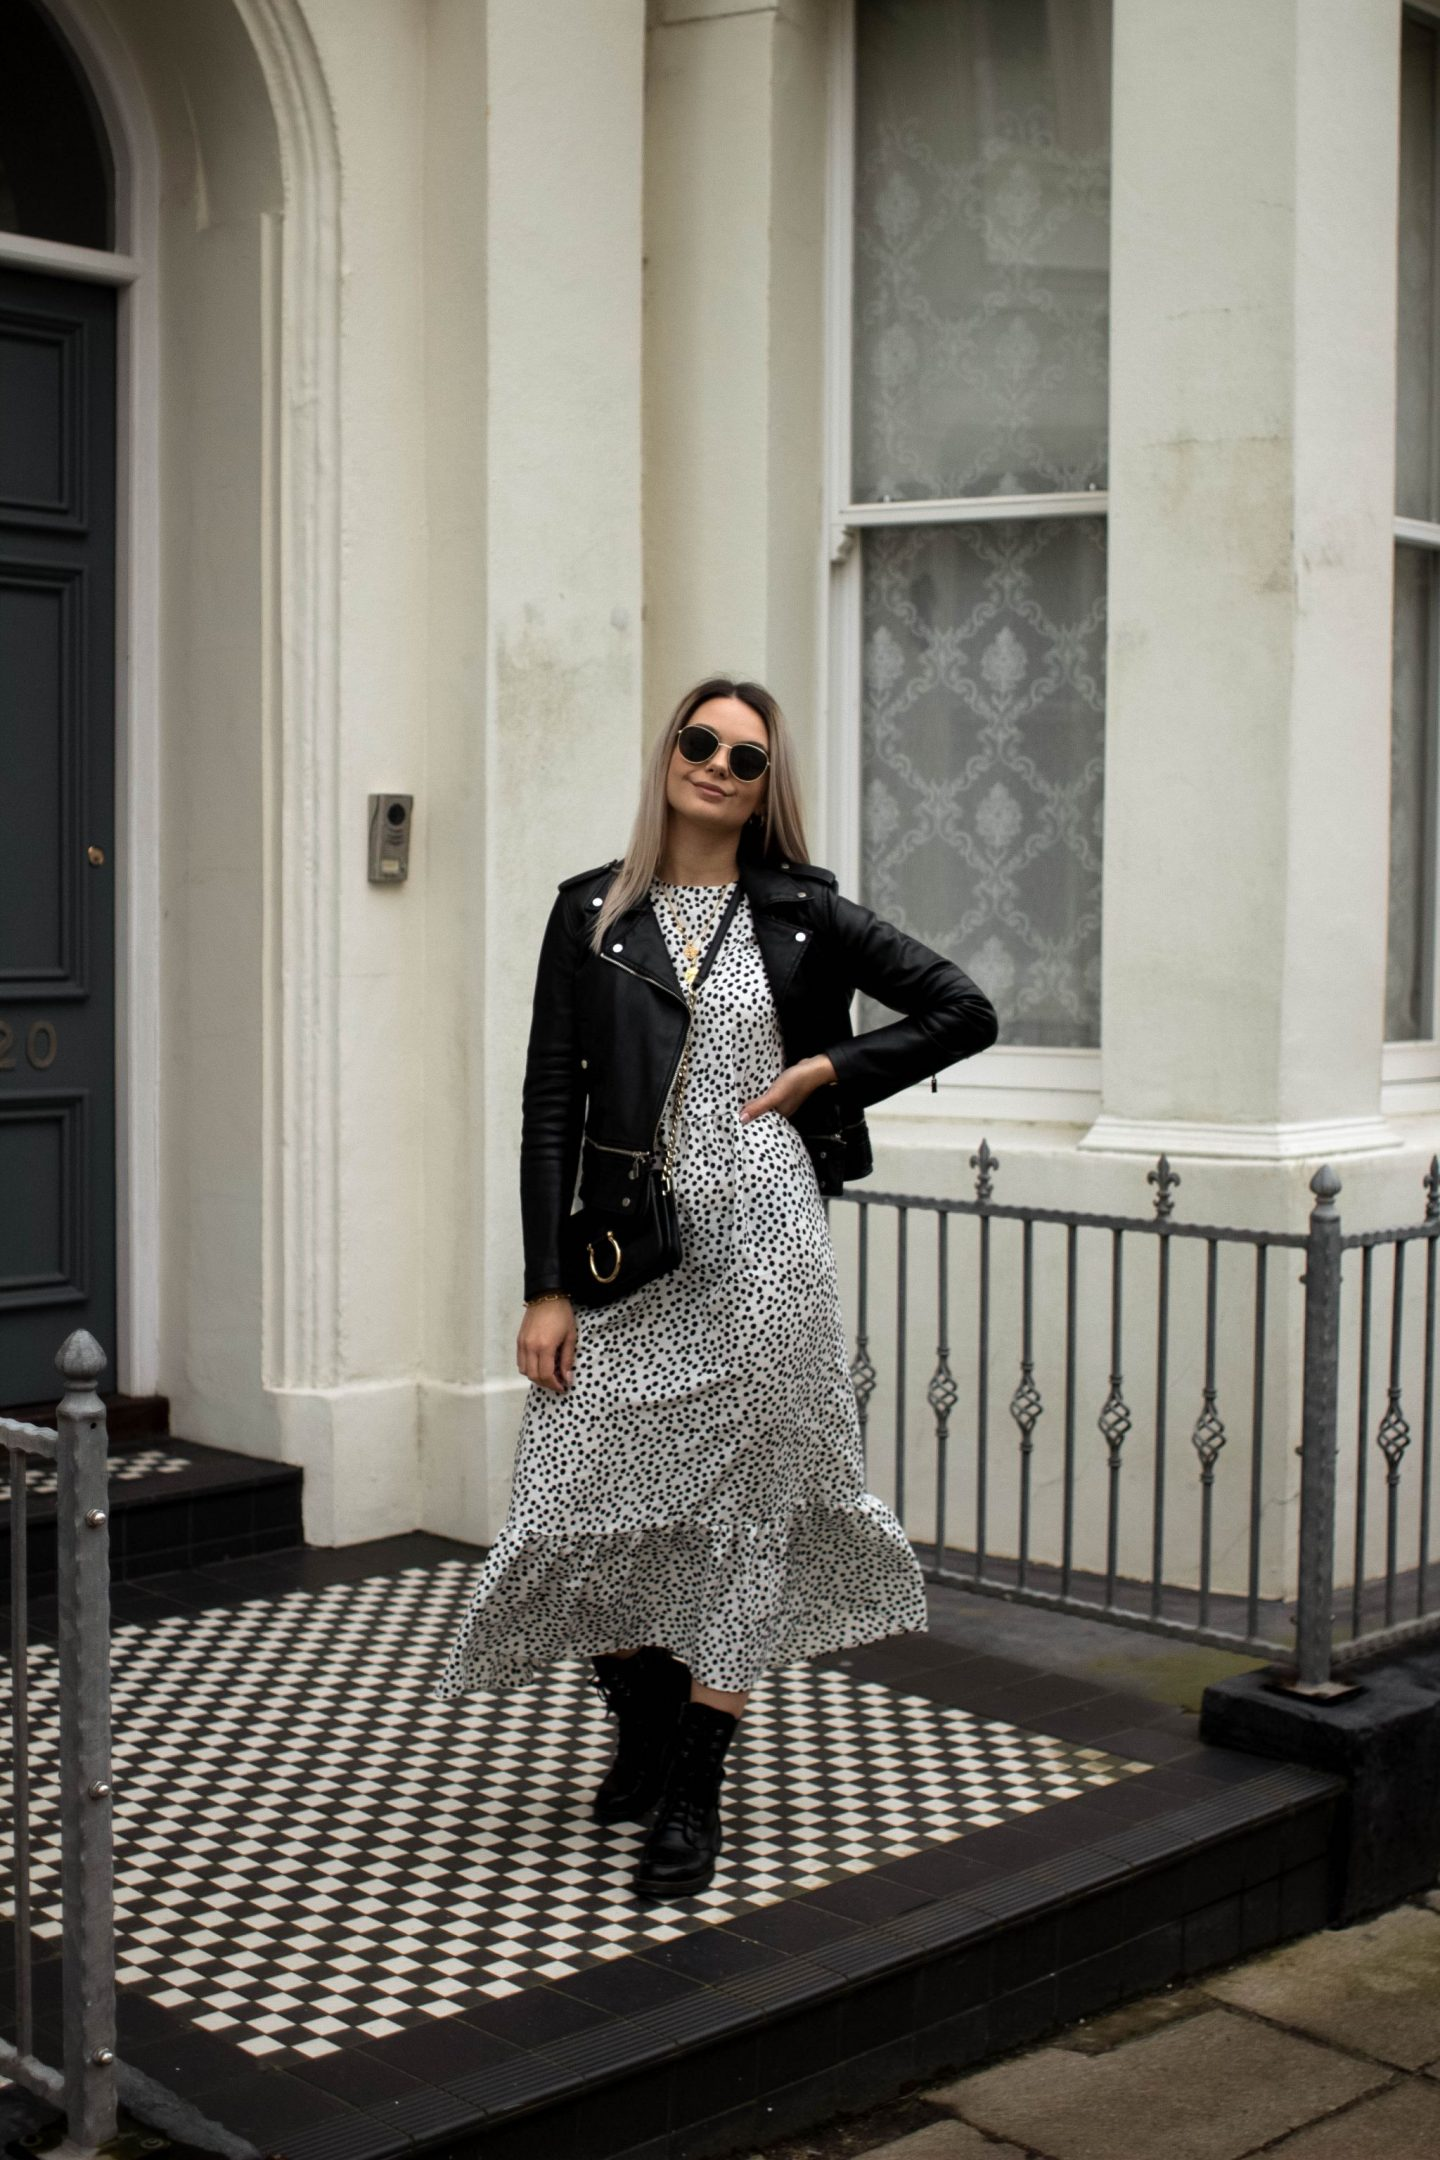 If your wardrobe doesn't have a black and white spotted dress in it, then is it really complete?